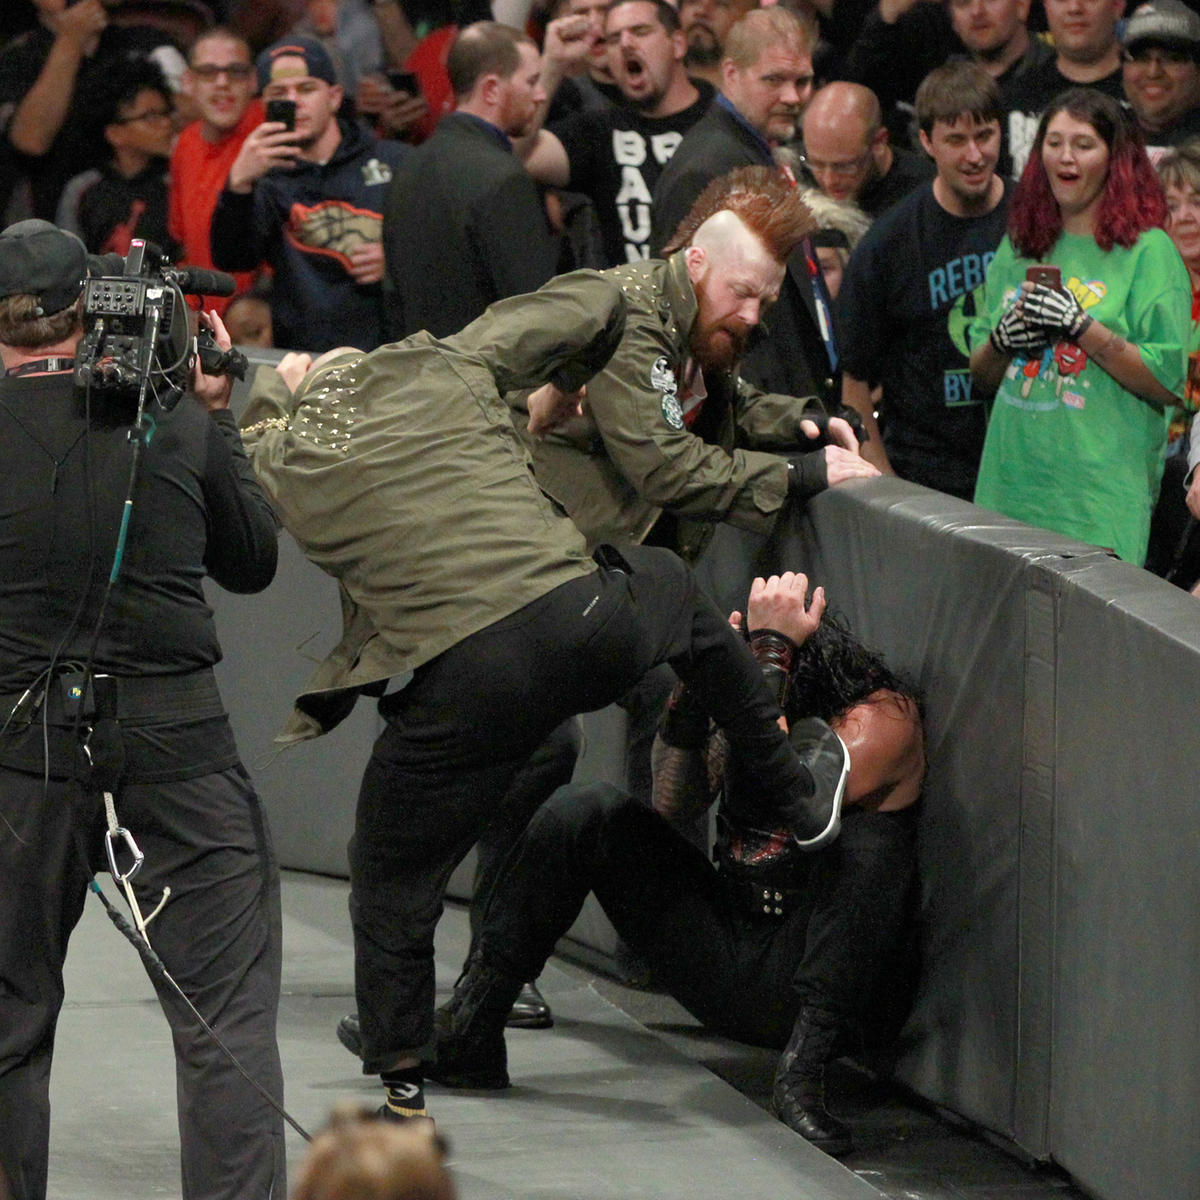 Just as Reigns is prepared to hit the Spear on Miz, Sheamus & Cesaro attack!